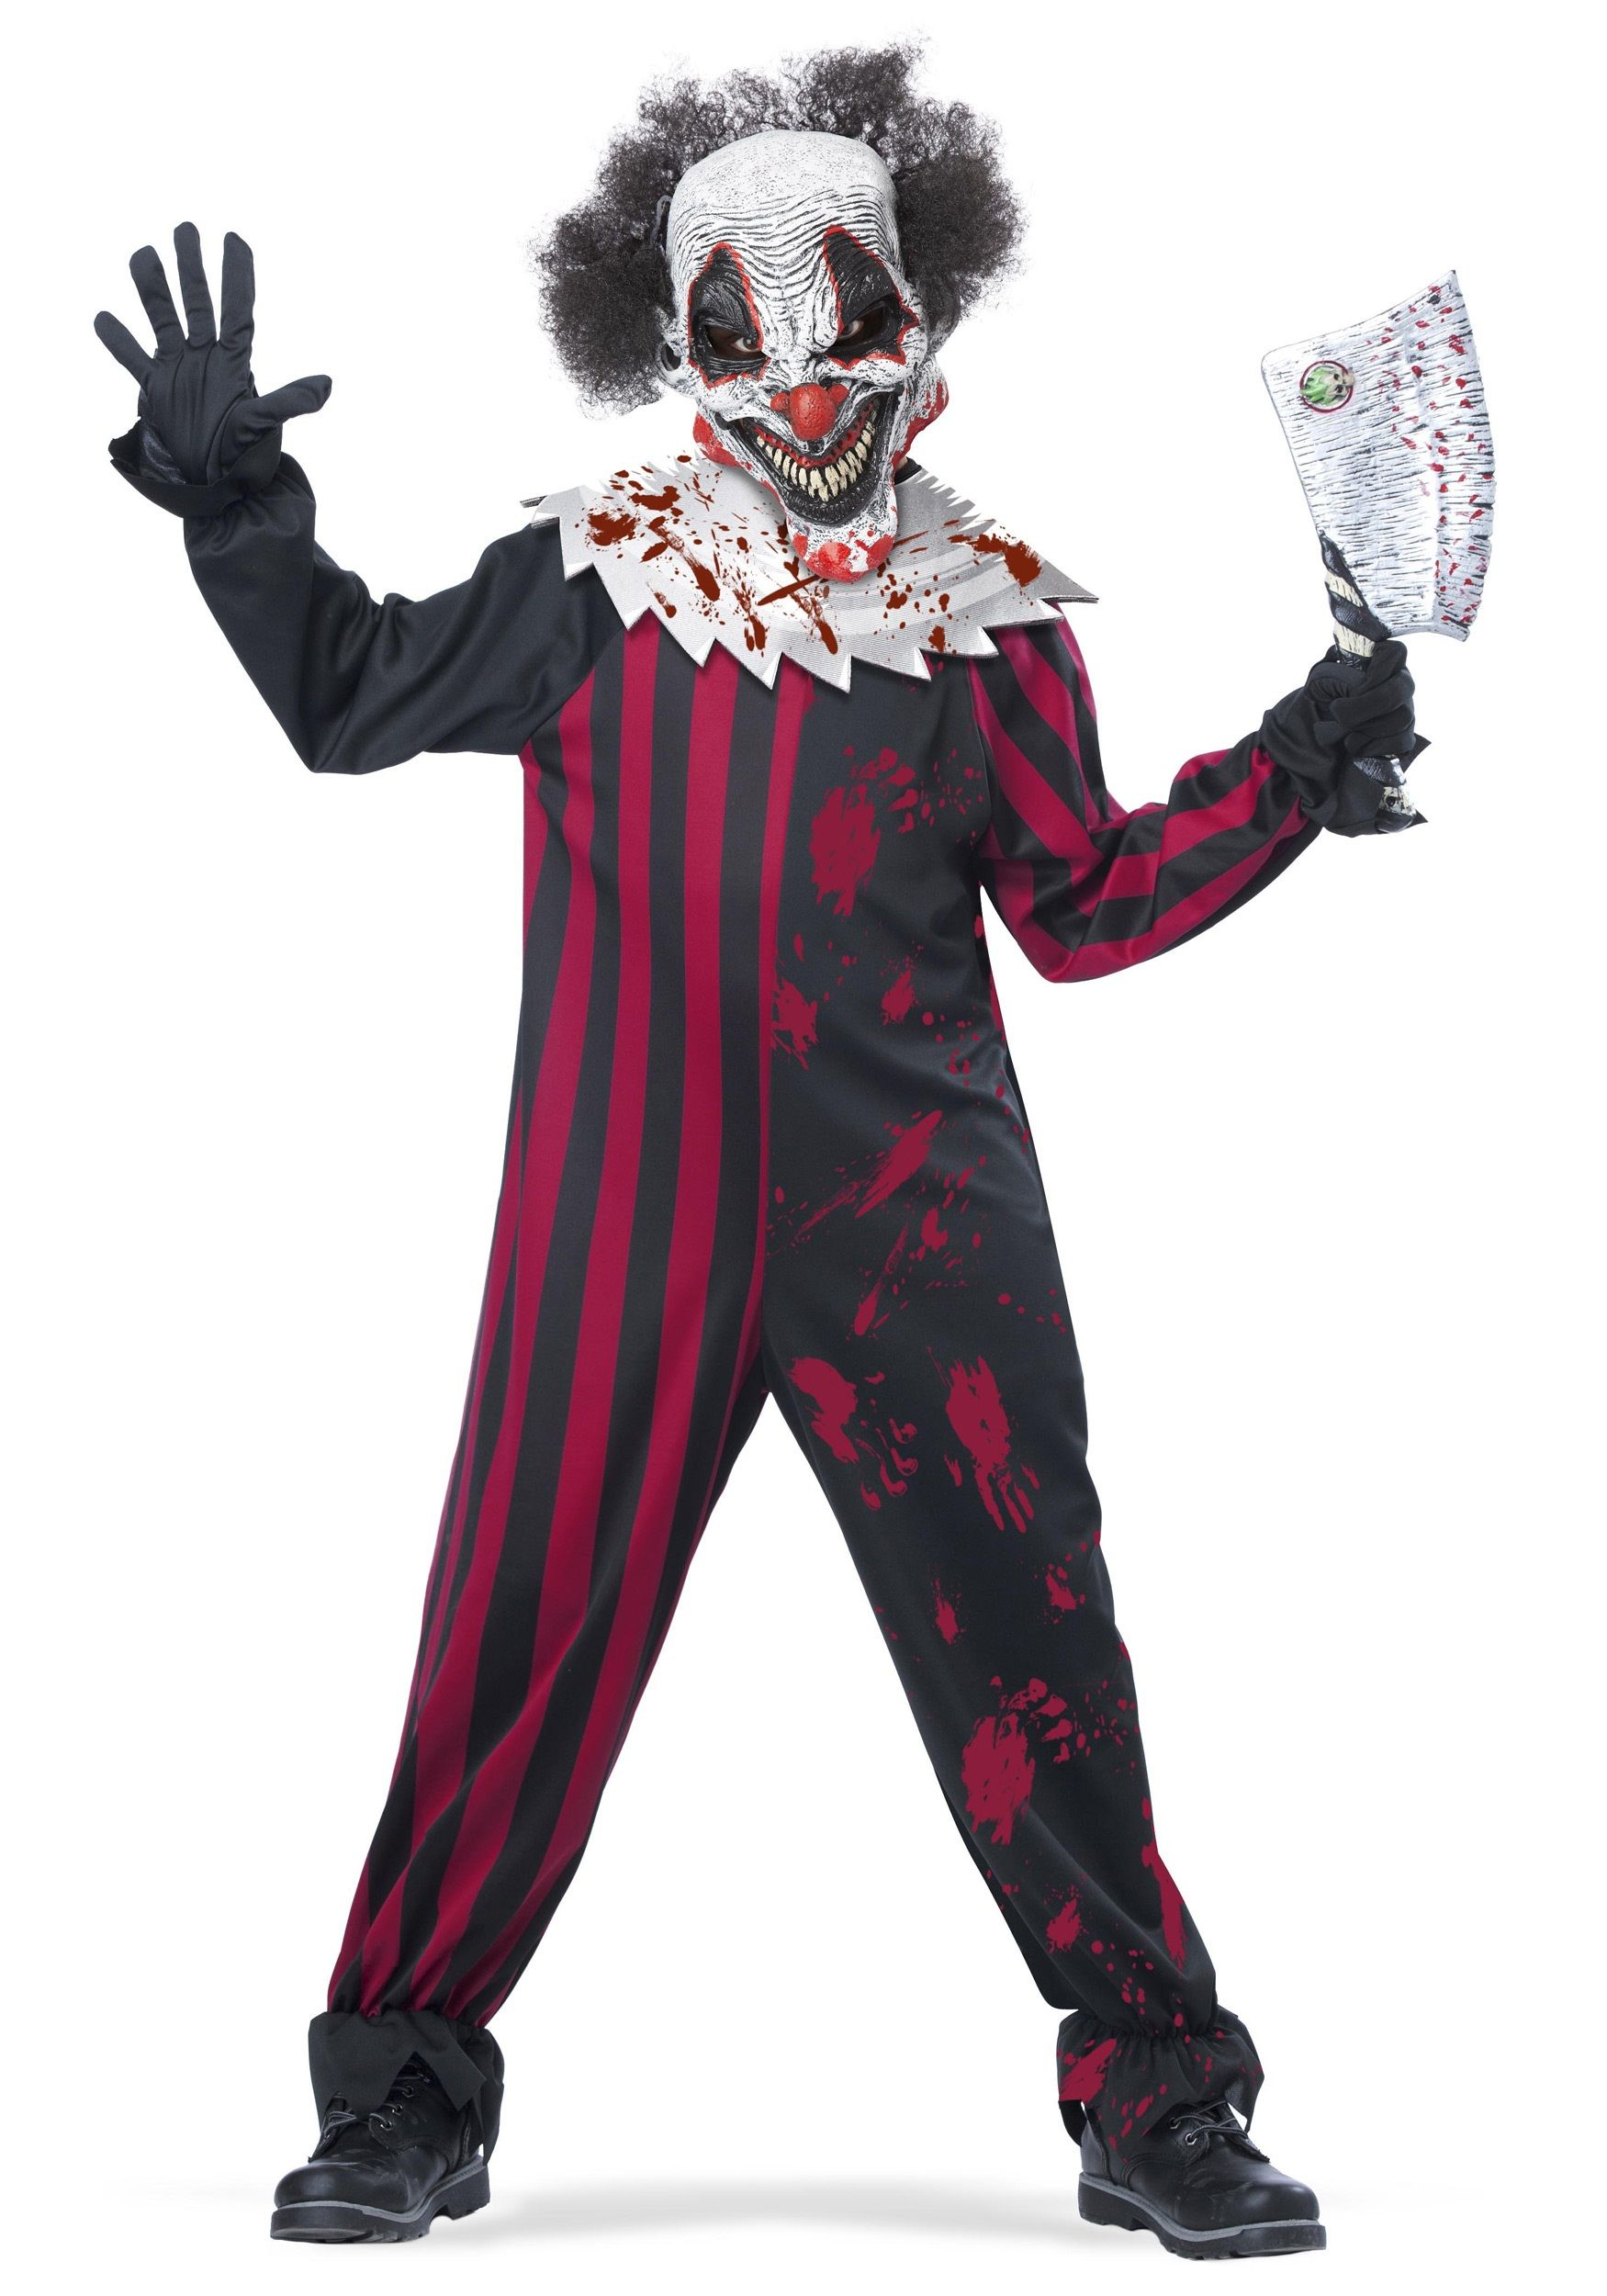 Boys Killer Clown Costume | Costumes, Halloween costumes and Boy ...